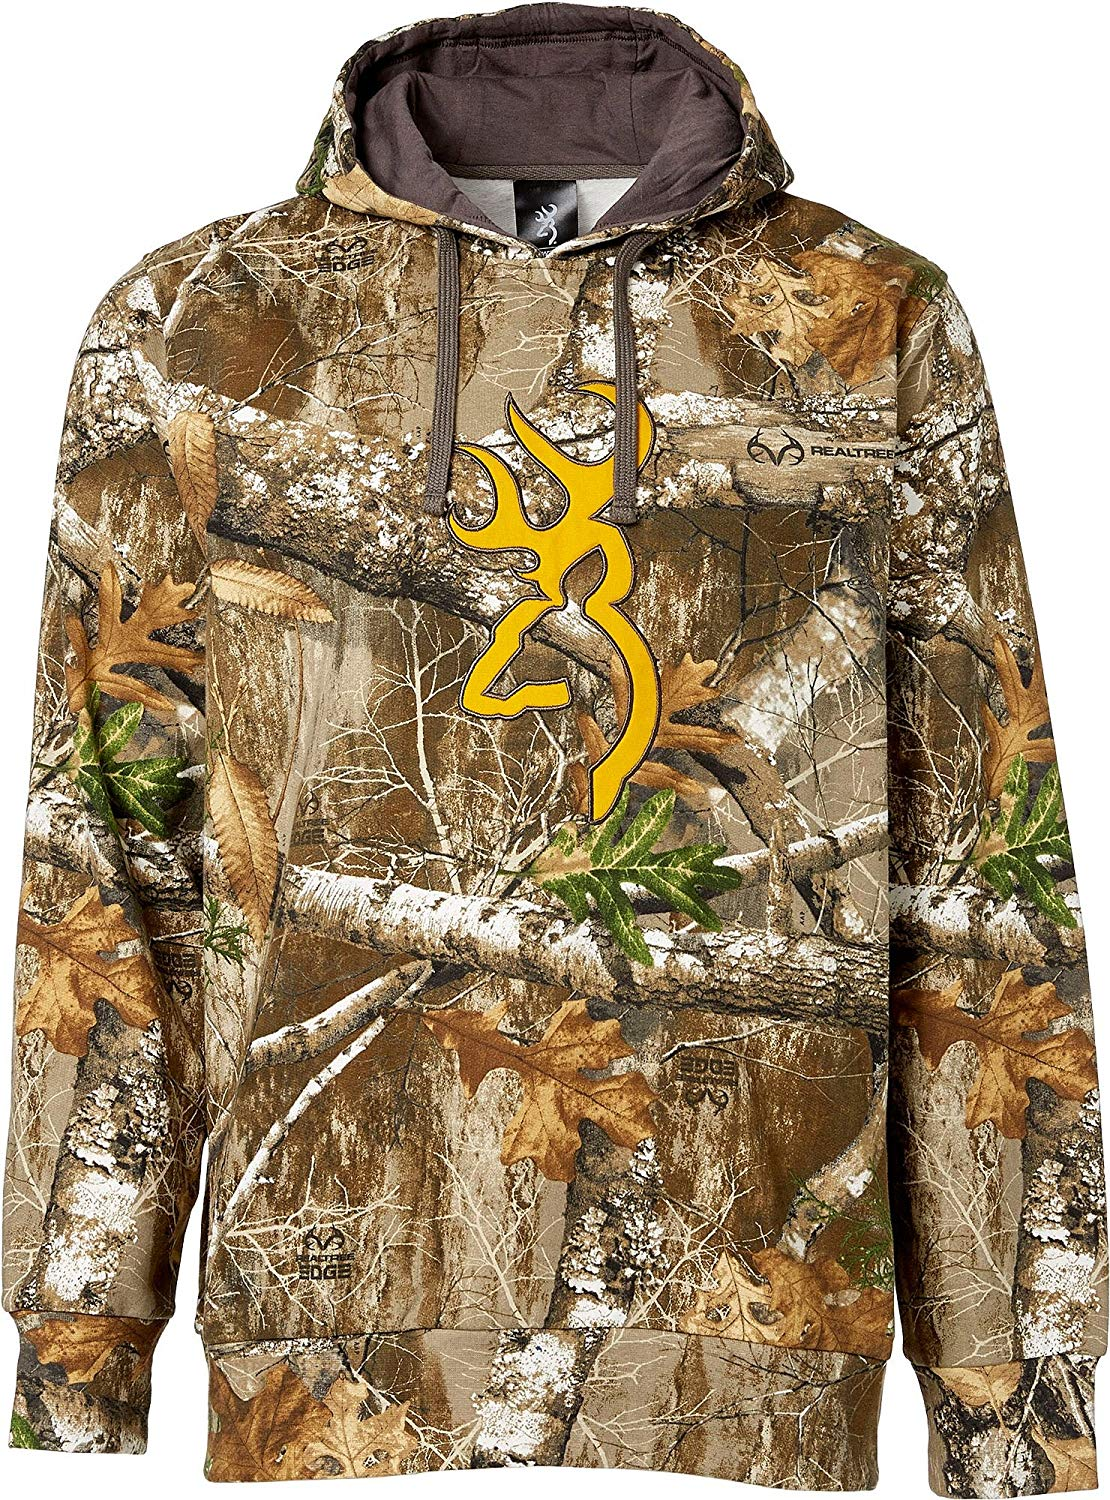 99025879980b2 Browning Men's Realtree Edge Buckmark Hoodie #301798600 – Dunns ...